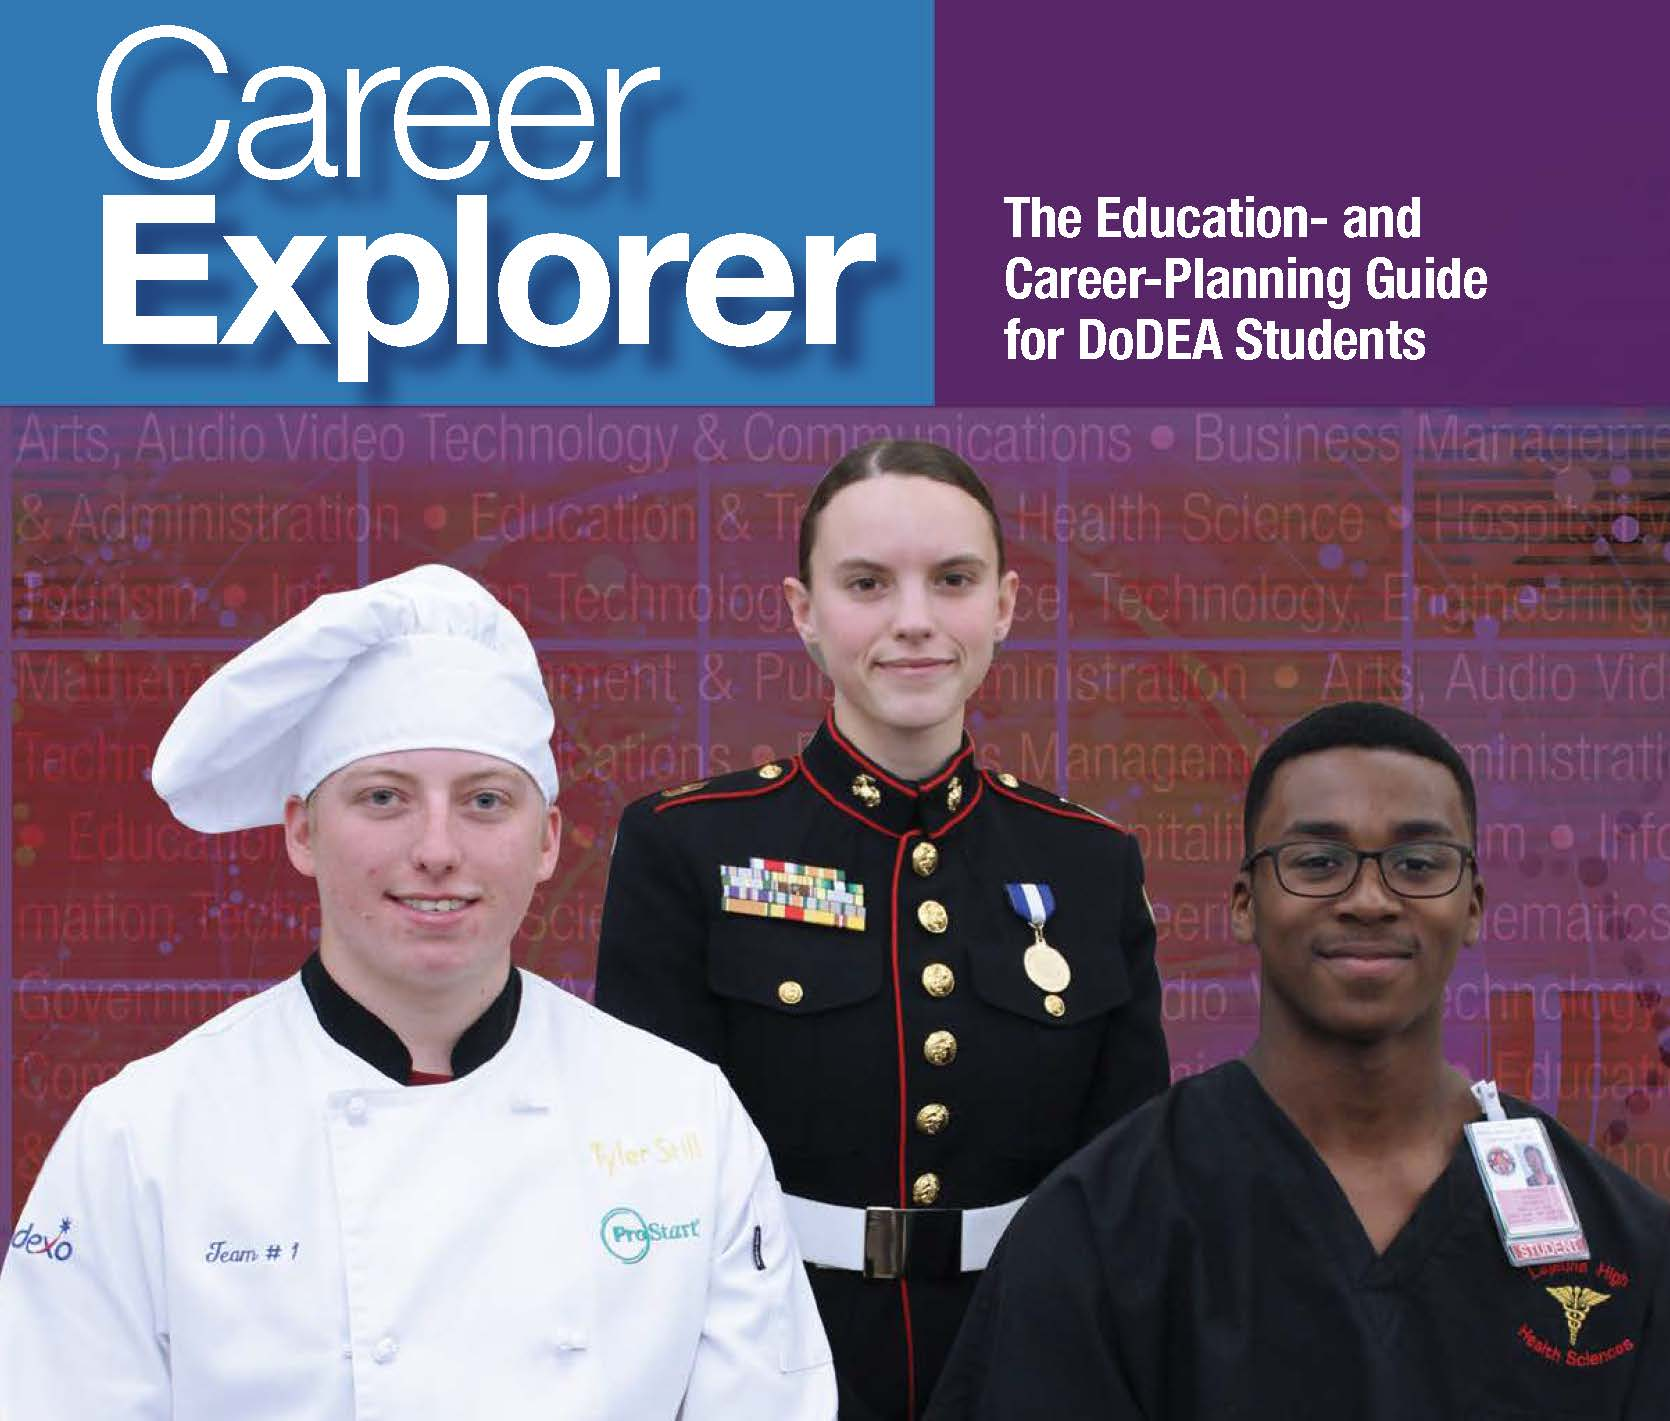 CAREER EXPLORER